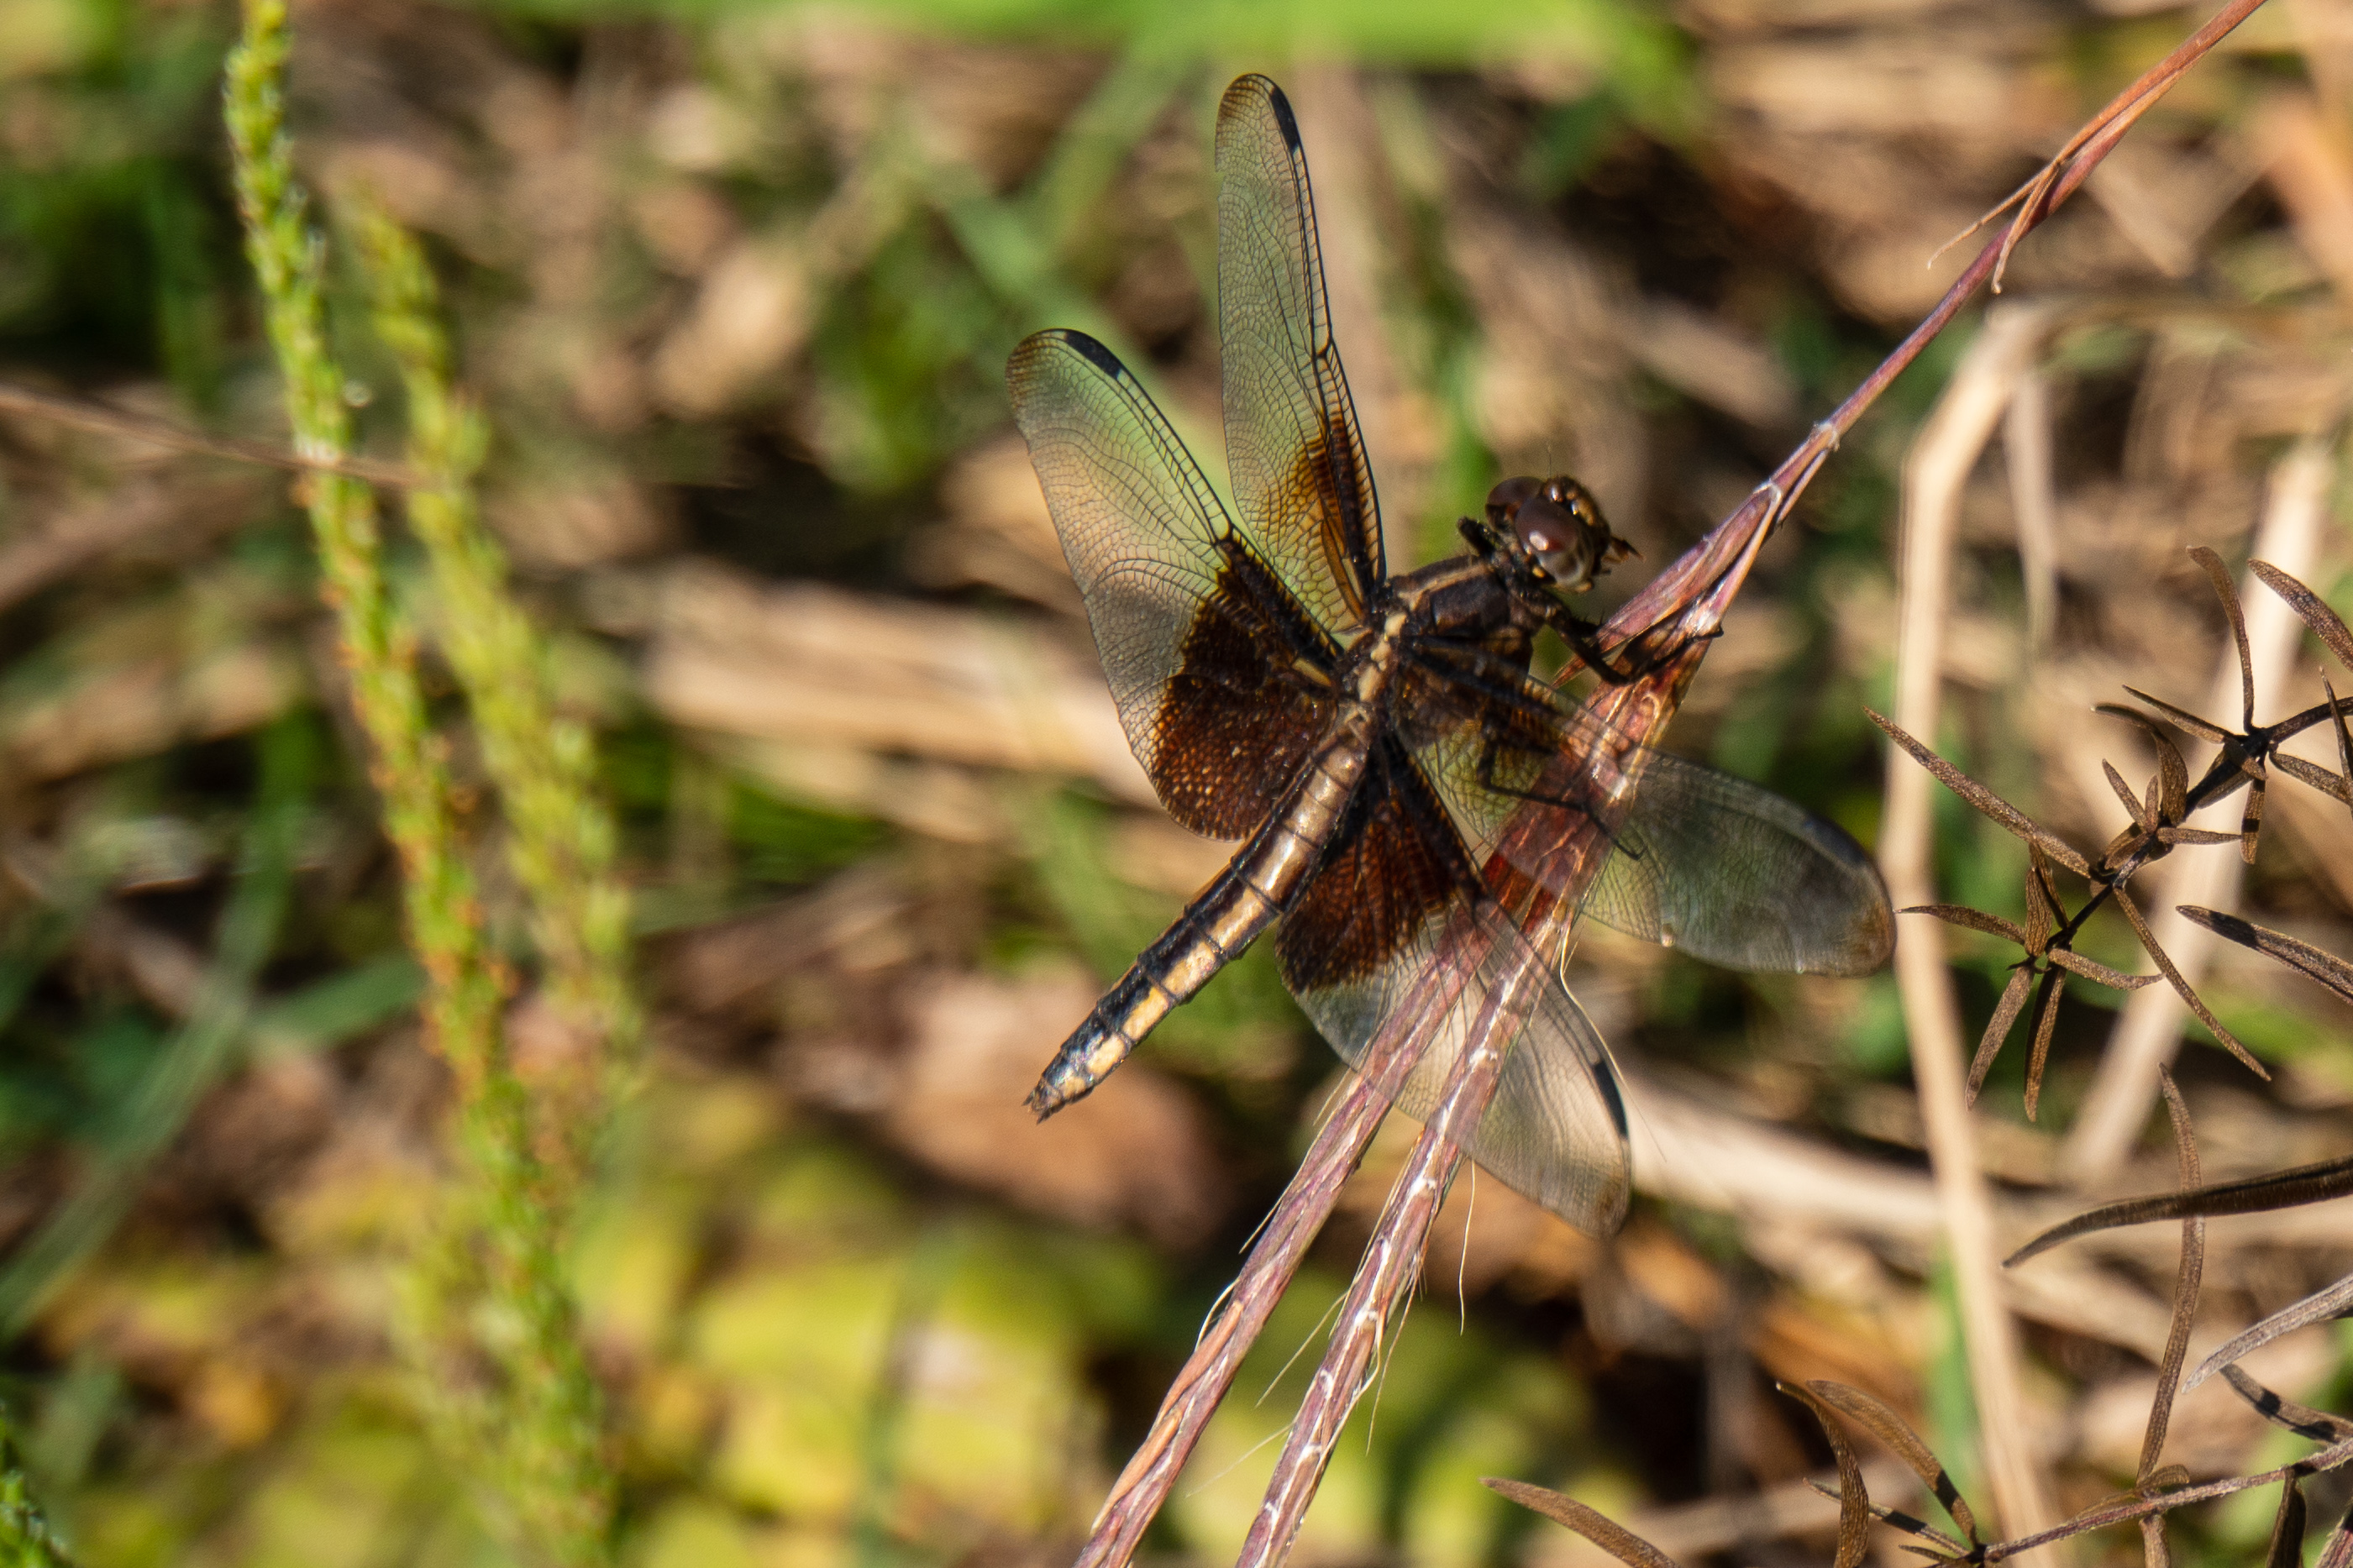 (3/4) A female widow skimmer dragonfly alights on a blade of grass. nature, wildlife, animal, insect, dragonfly Photo: Marguerite Tonjes